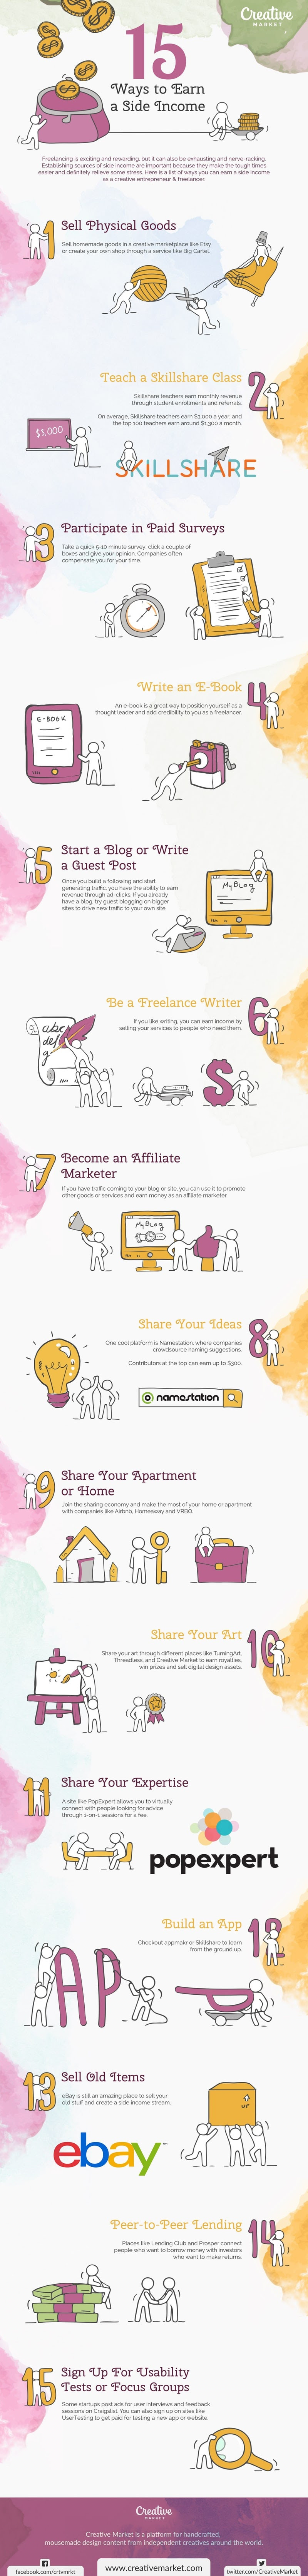 15 Ways to Earn a Side Income - #infographic